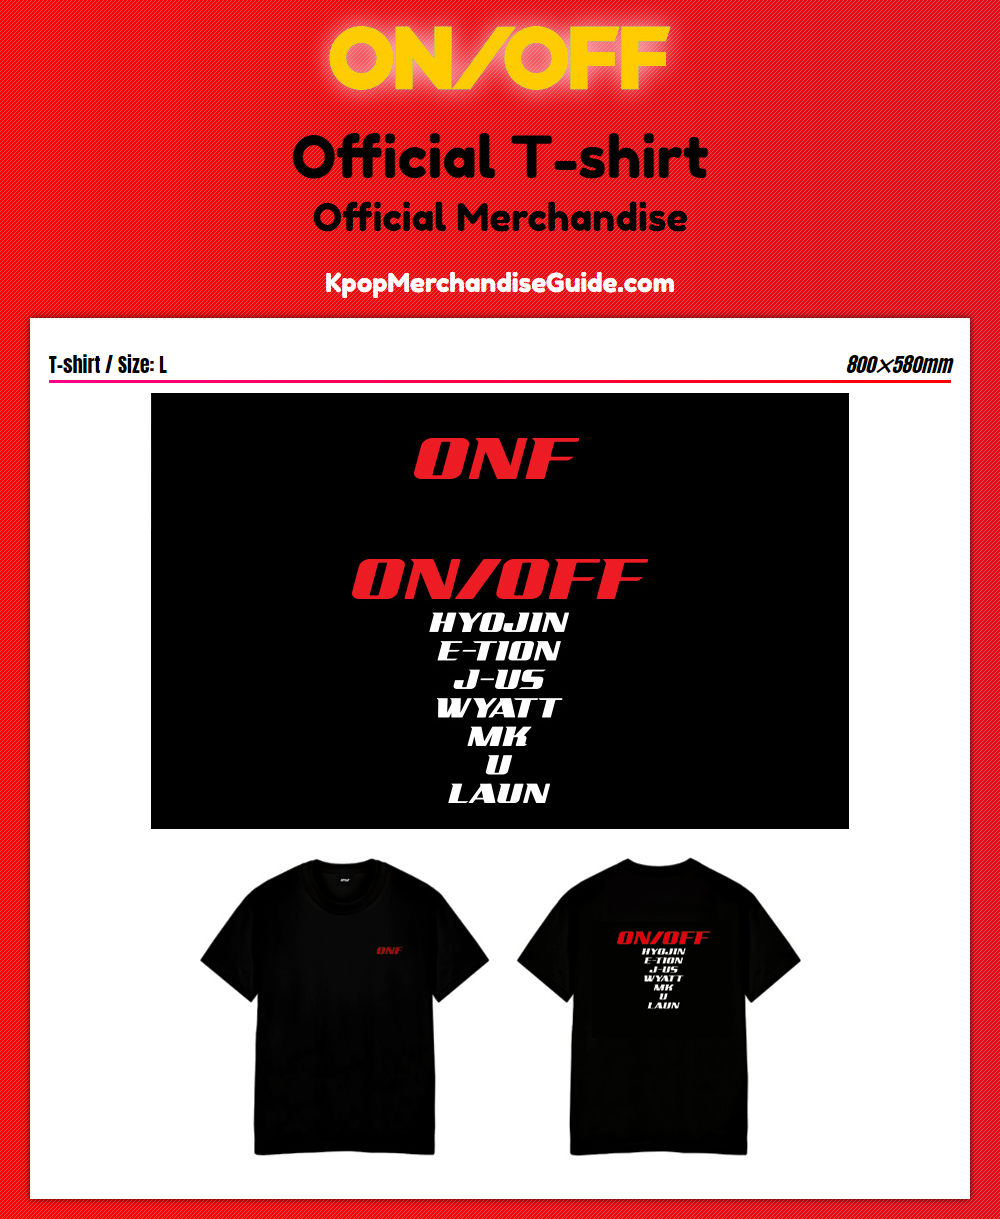 ONF Official T-shirt